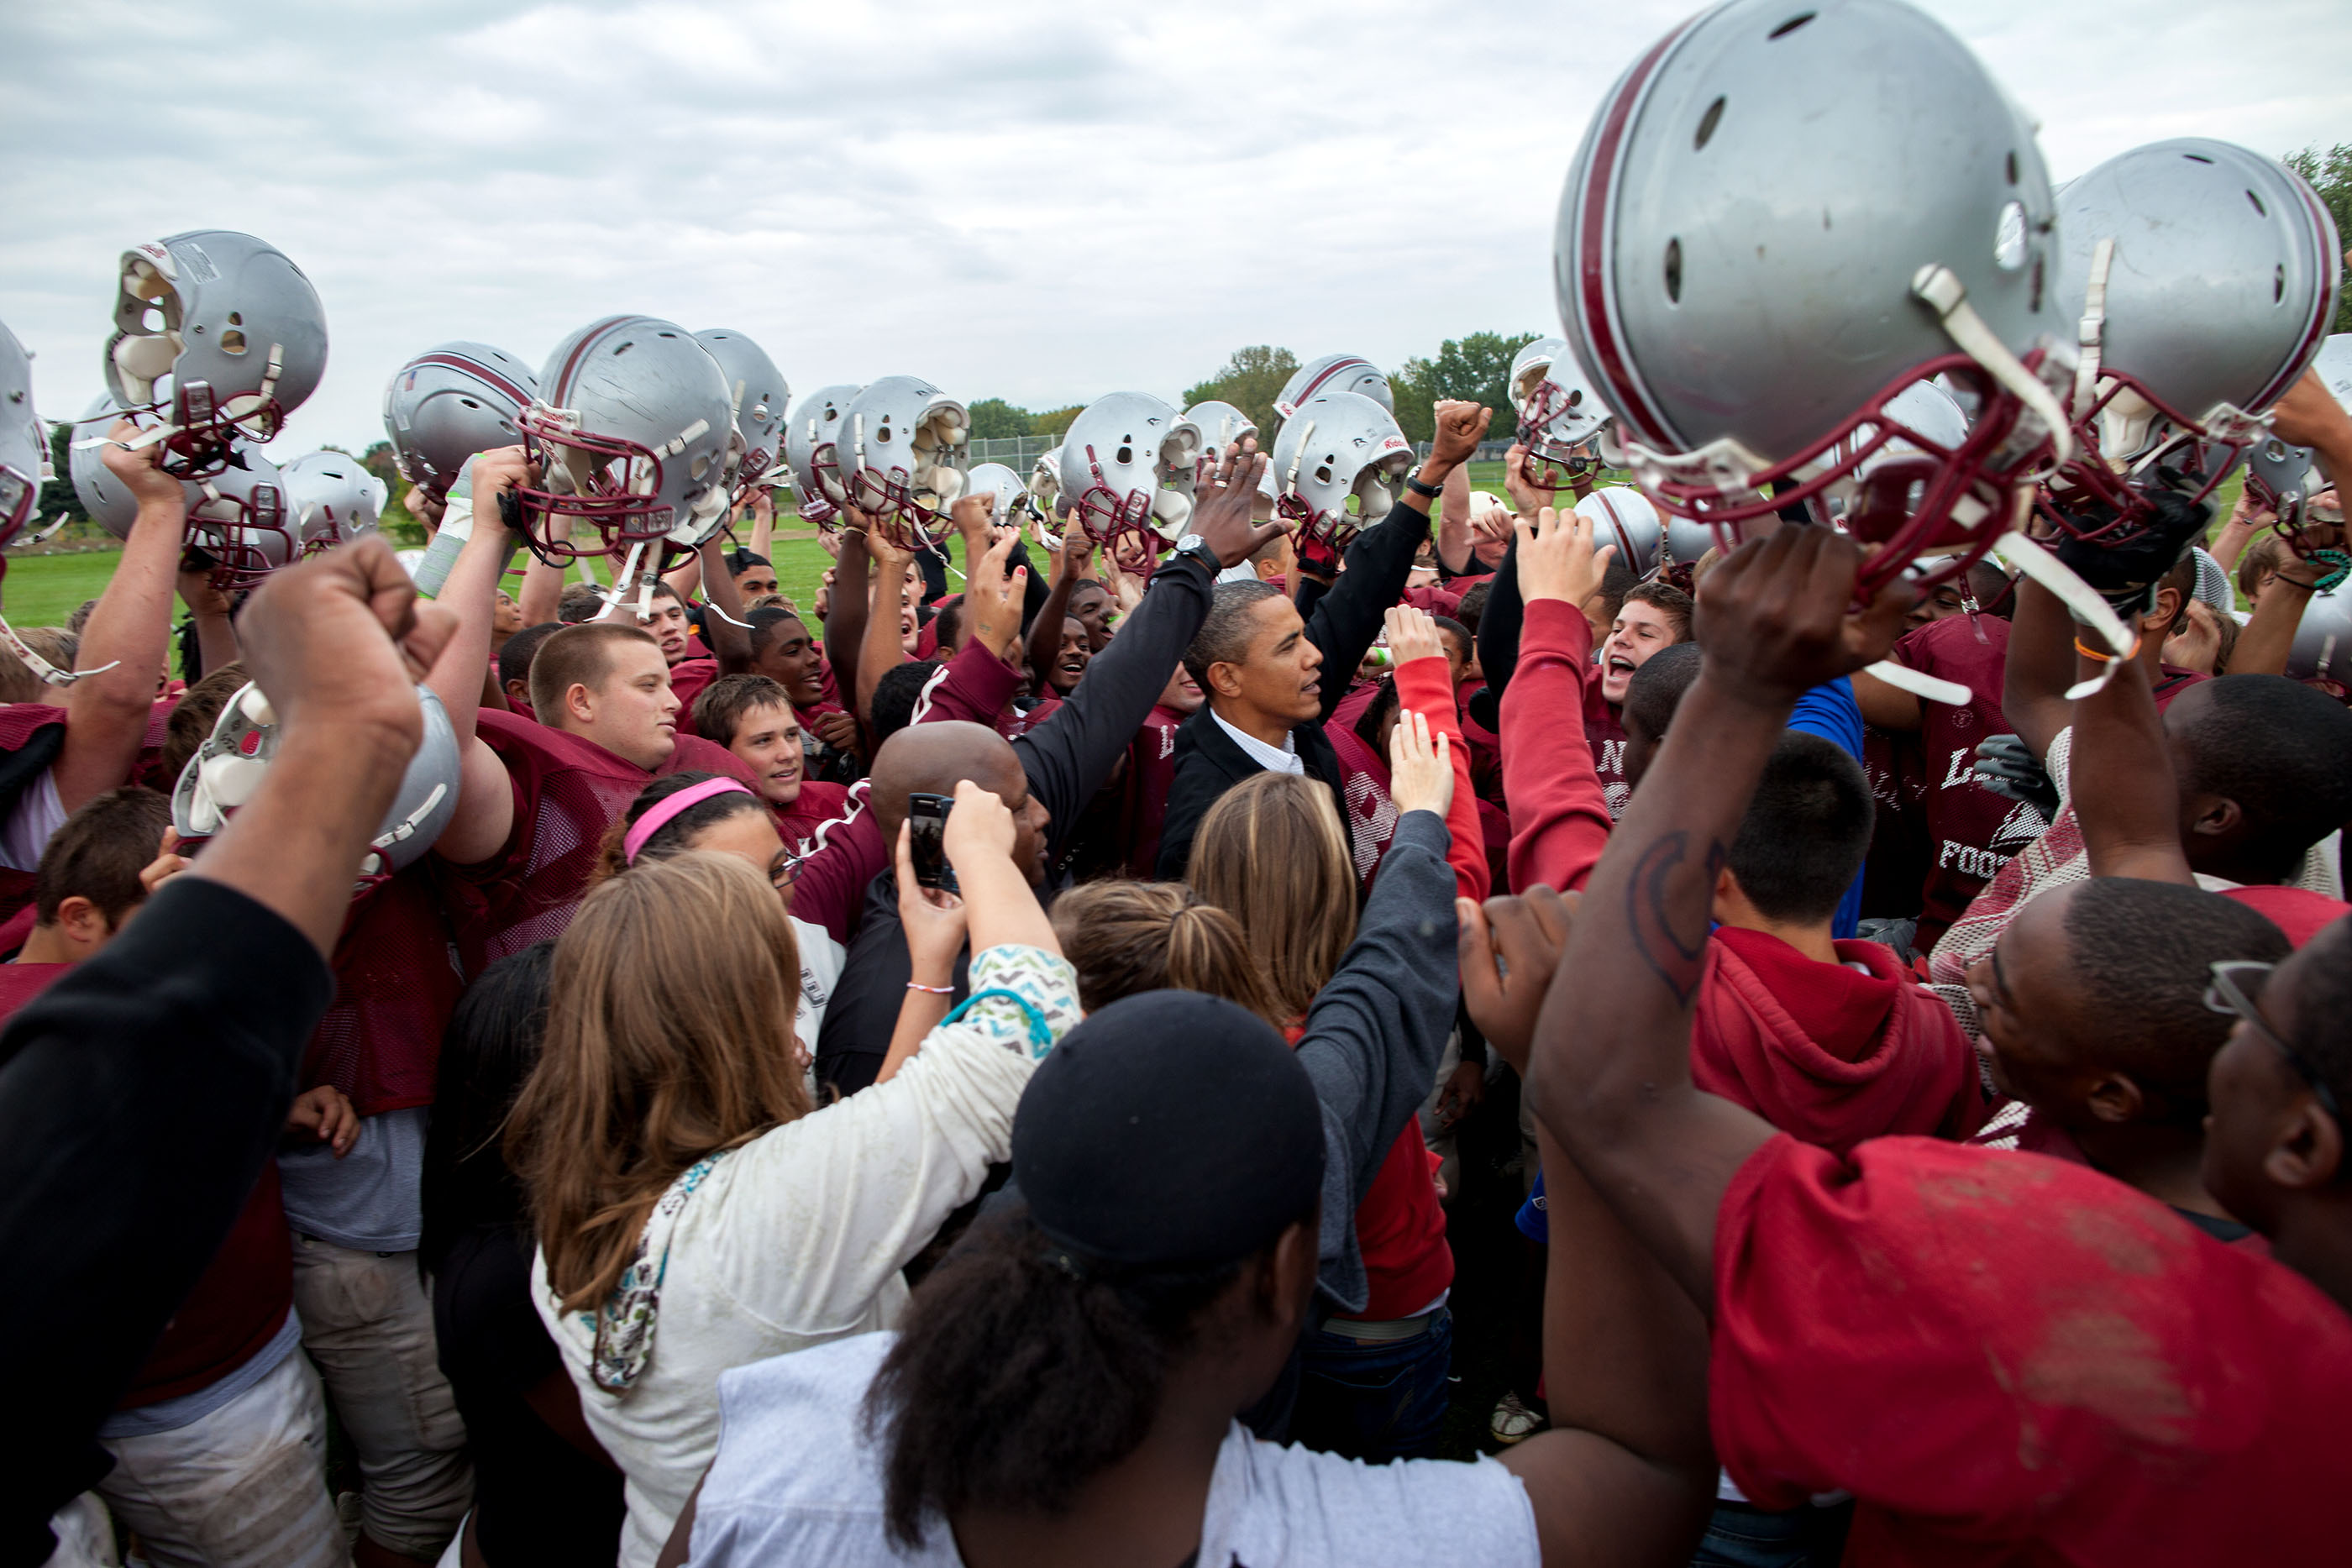 Wisconsin, Sept. 28, 2010. Cheering with the La Follette Lancers football team during their practice in Madison. (Official White House Photo by Pete Souza)